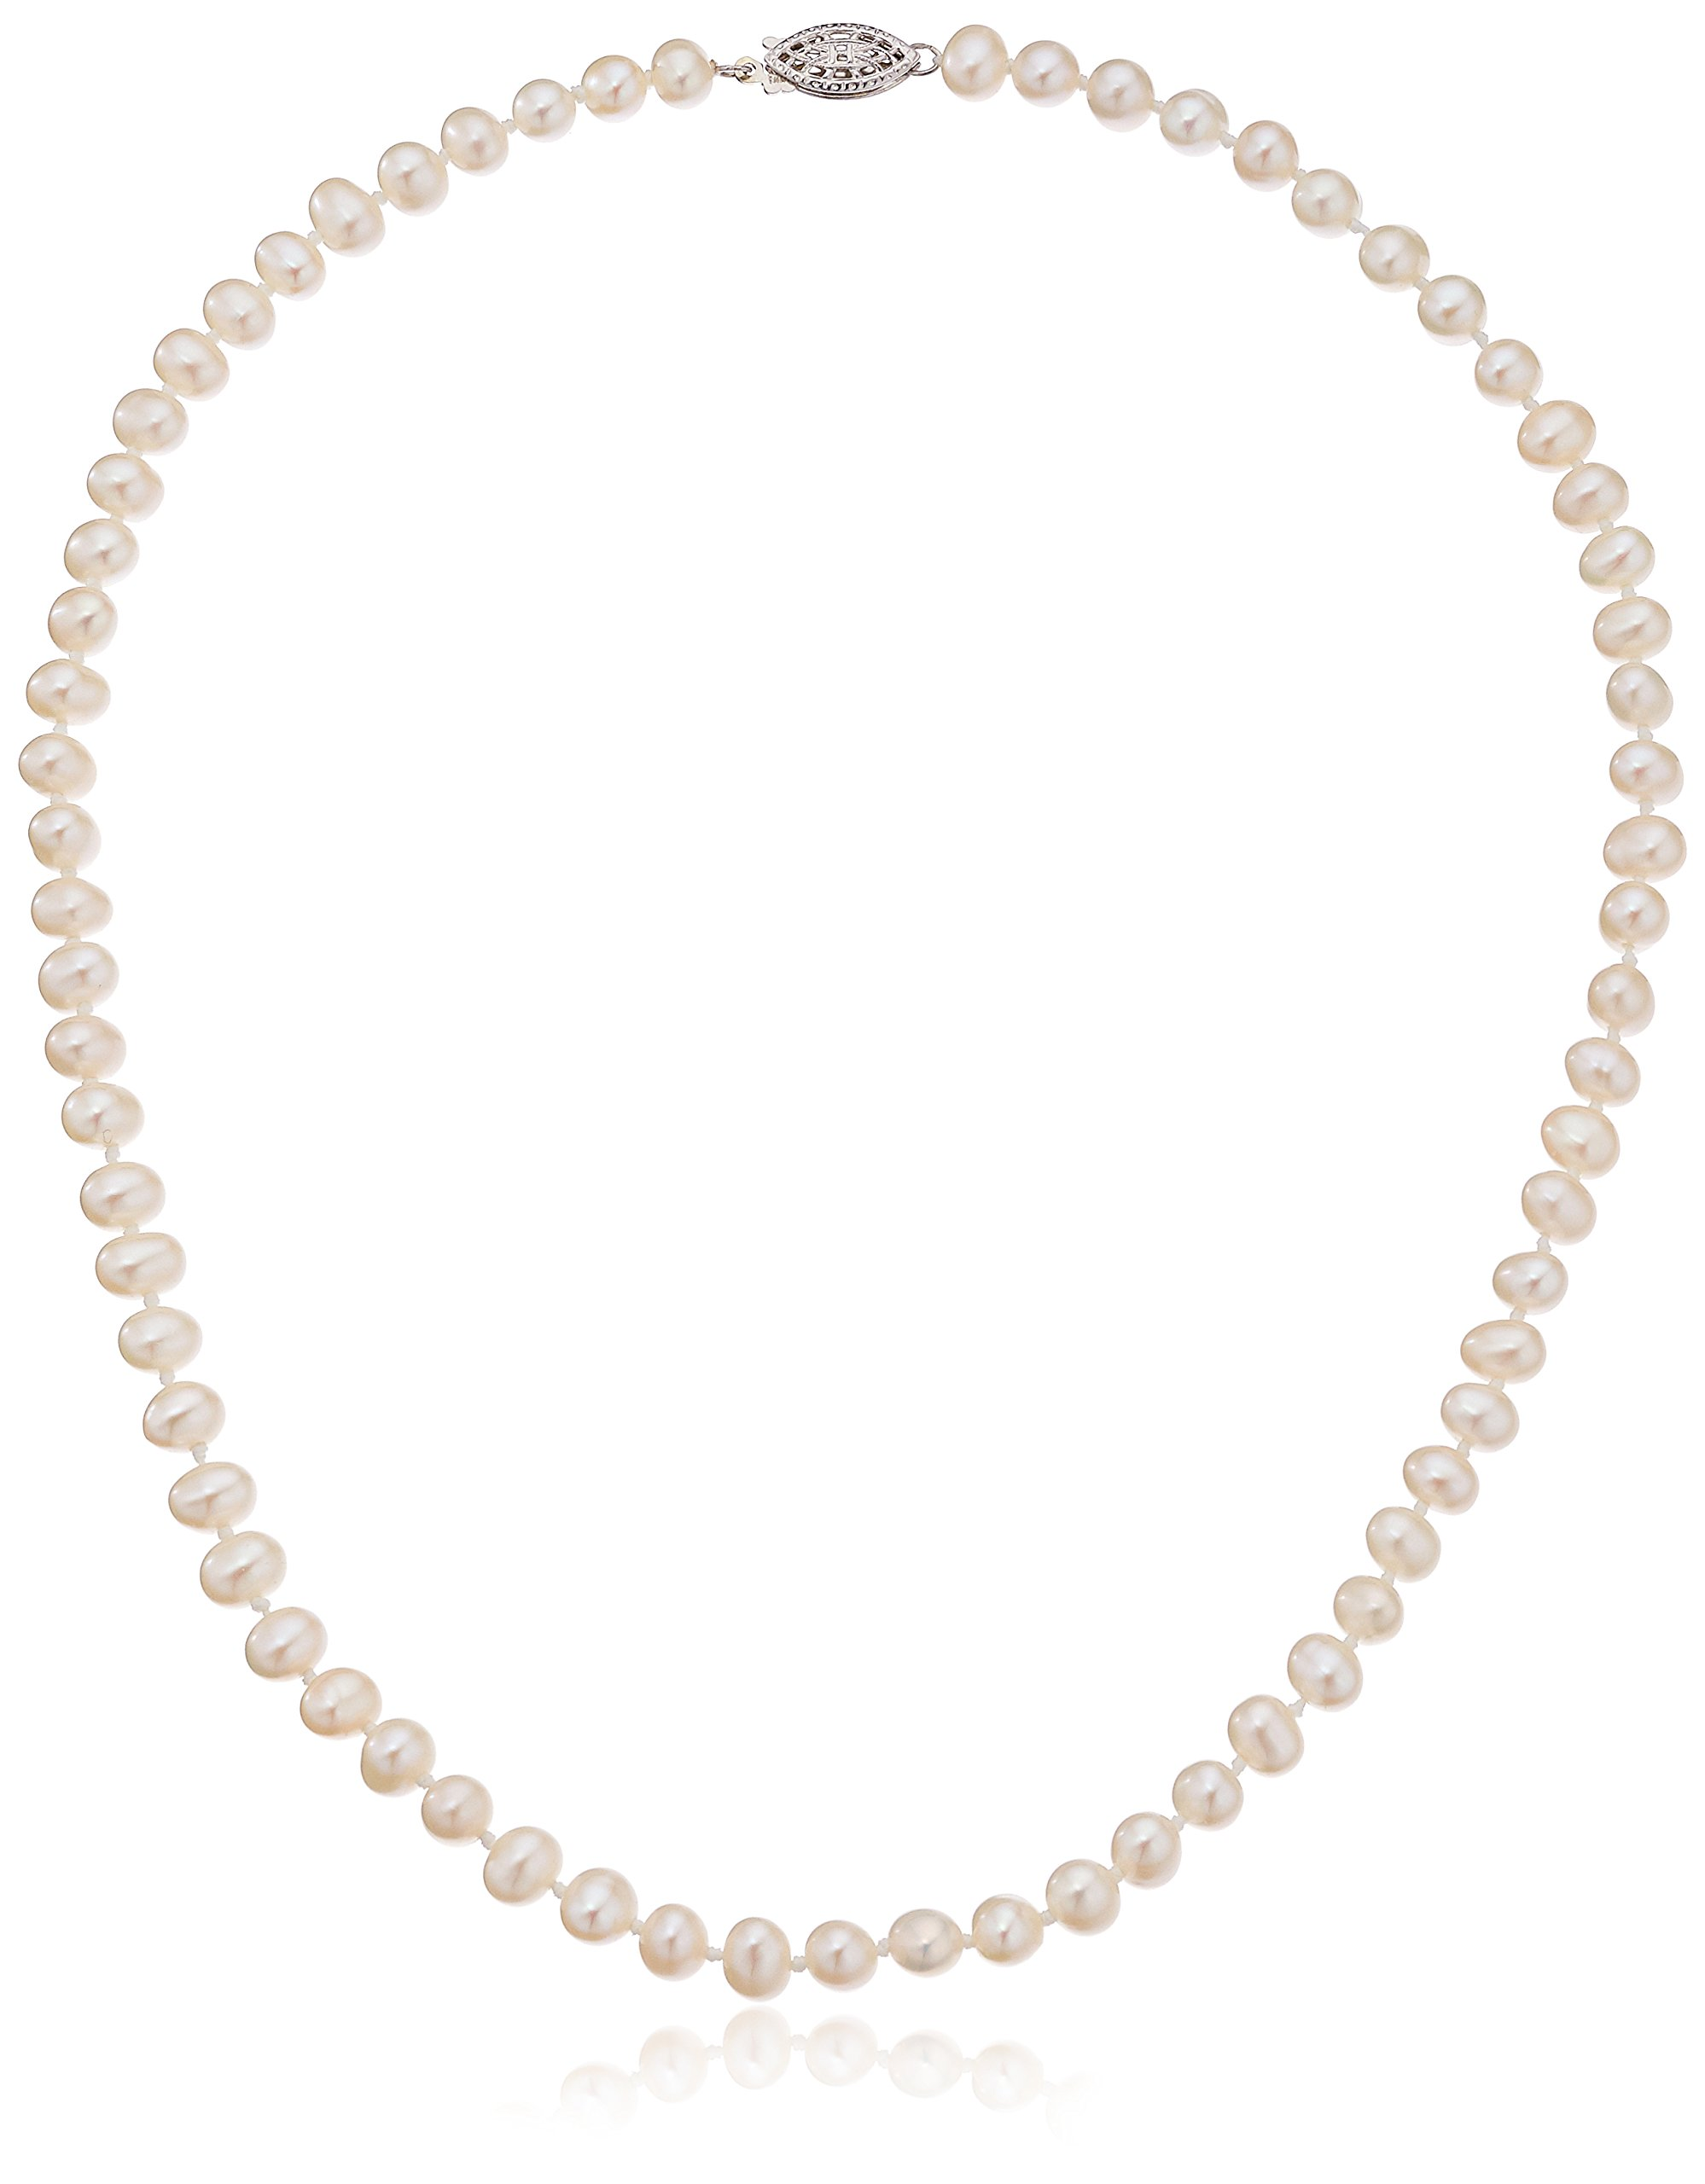 GSI Sterling Silver White A-Grade Freshwater Cultured-Pearl Necklace (16) by GSI